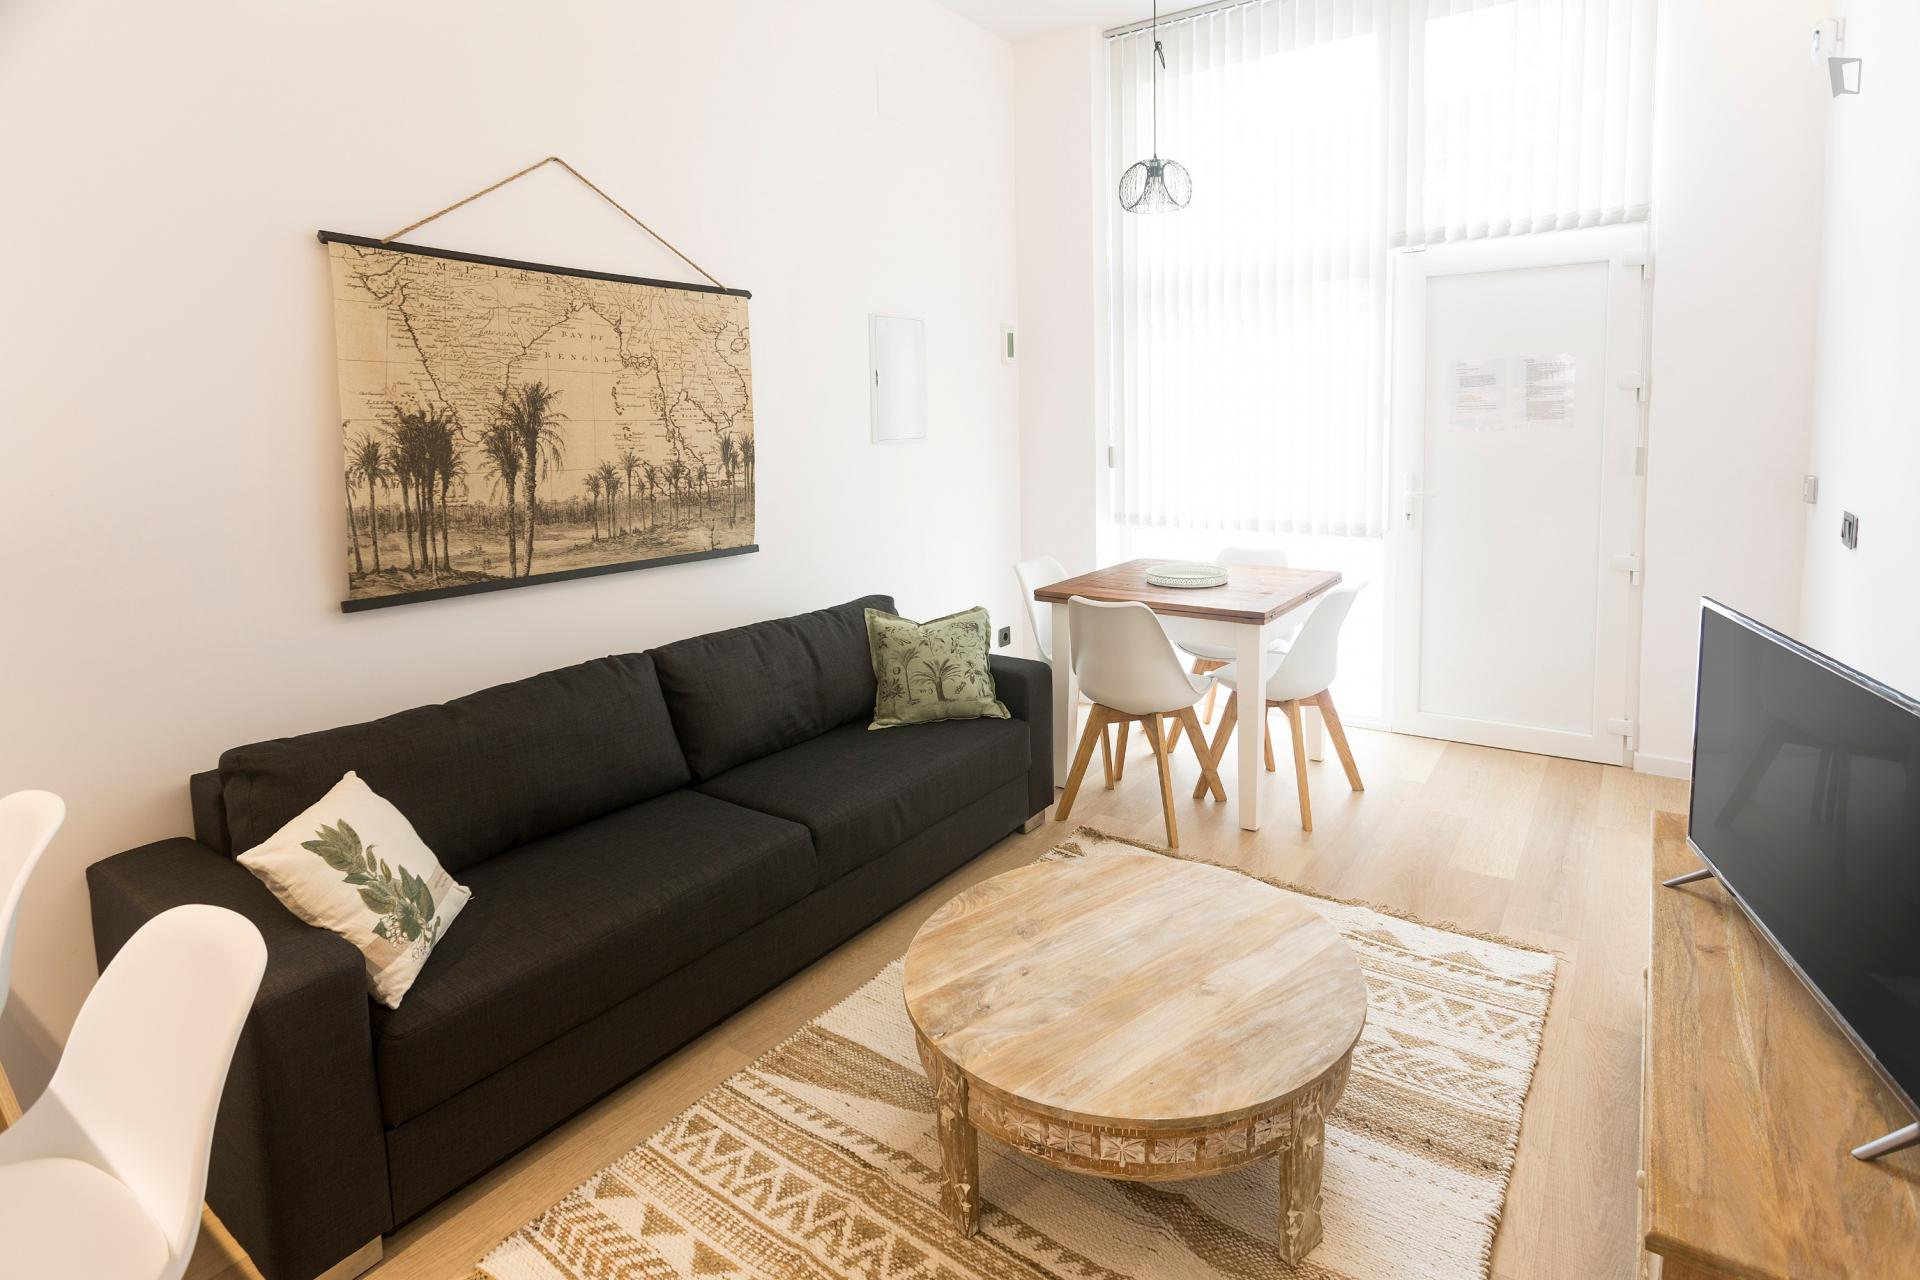 Cos - One bedroom home in Madrid